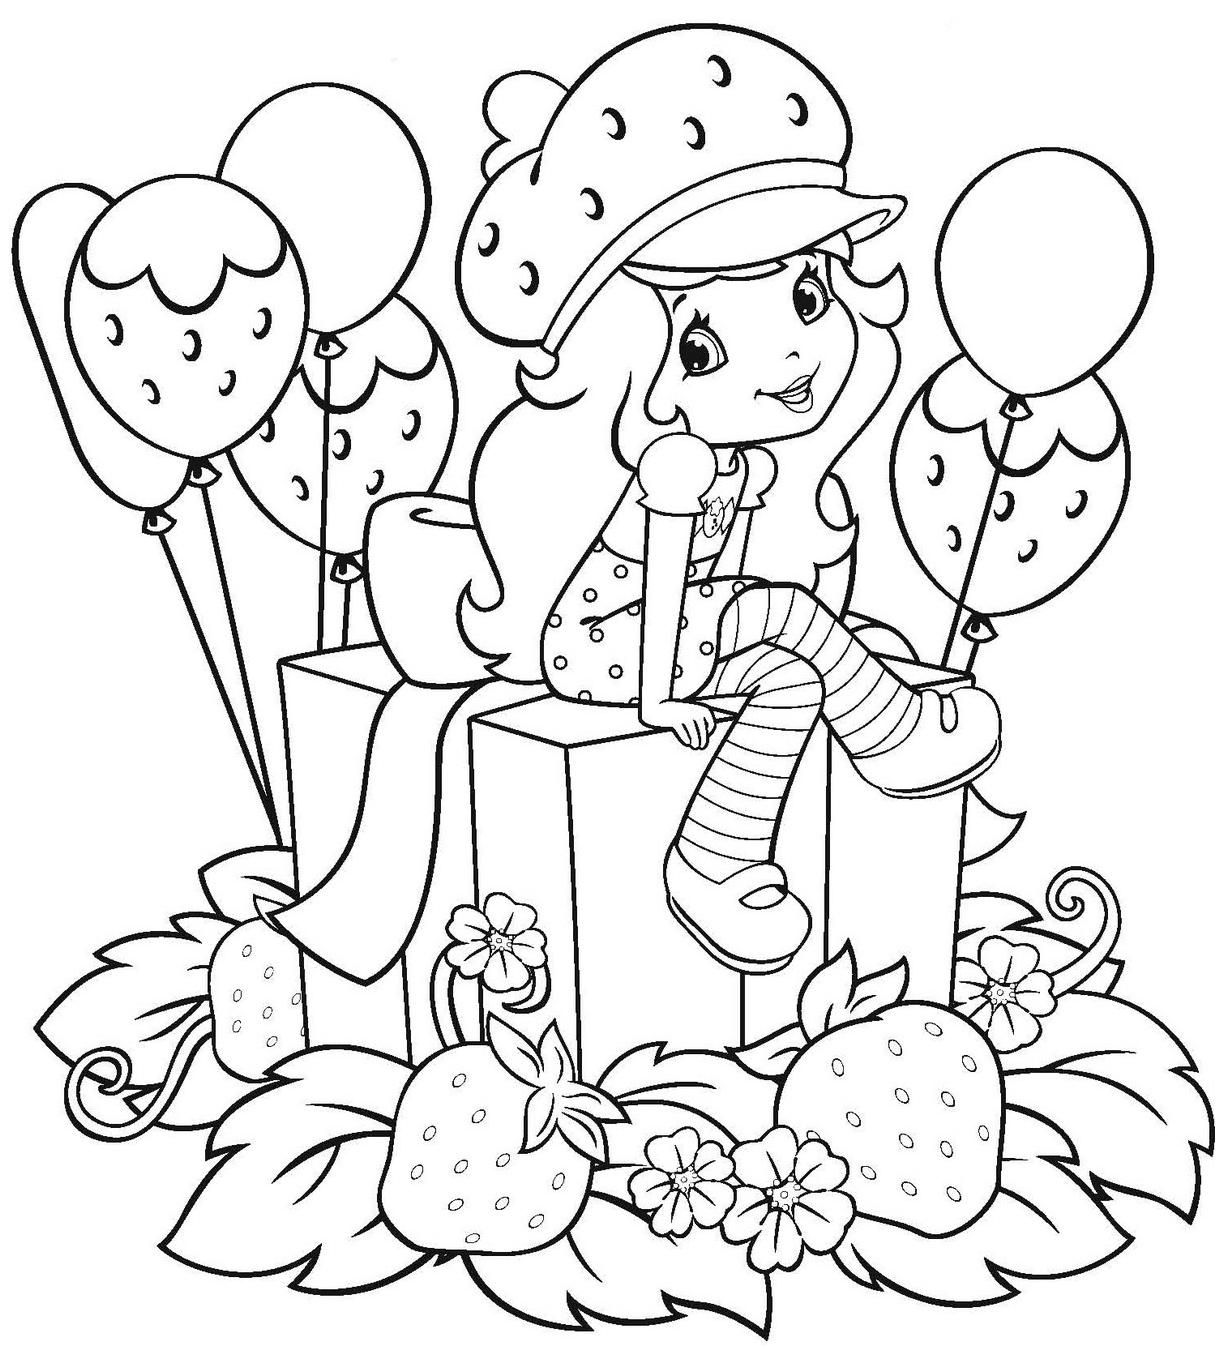 Nova Coloring Pages At Getcolorings